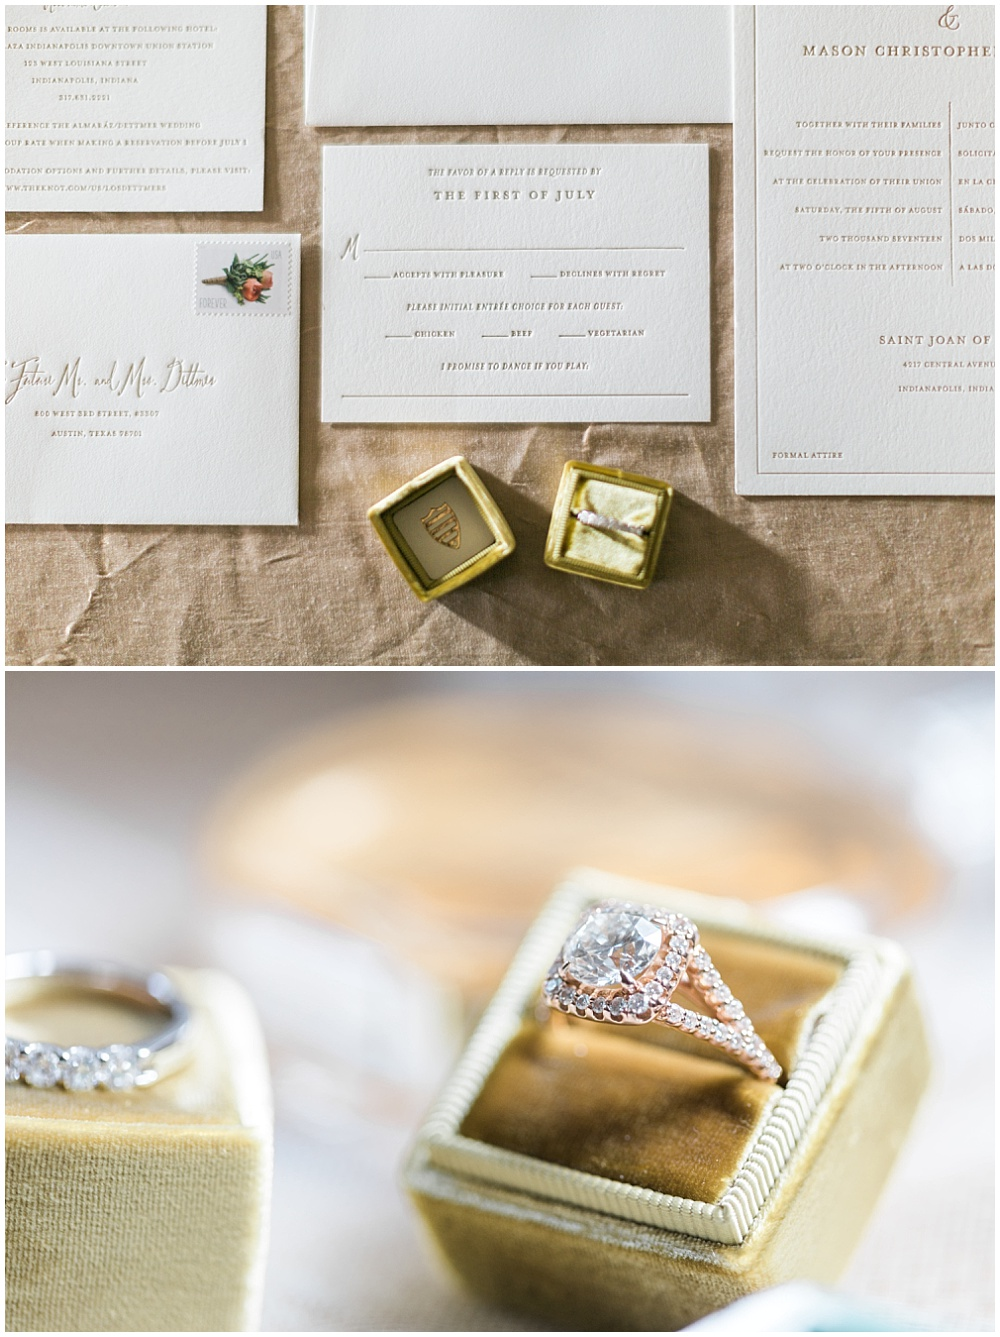 simple invitation suite; white and gold invitation suite; letterpress invitation suite; gold the mrs. box; wedding ring box; invitation flat lay photo; Mexican inspired gold & floral wedding; Crowne Plaza Indianapolis Downtown Union Station; neutral floral and greenery wedding|Cory + Jackie and Jessica Dum Wedding Coordination